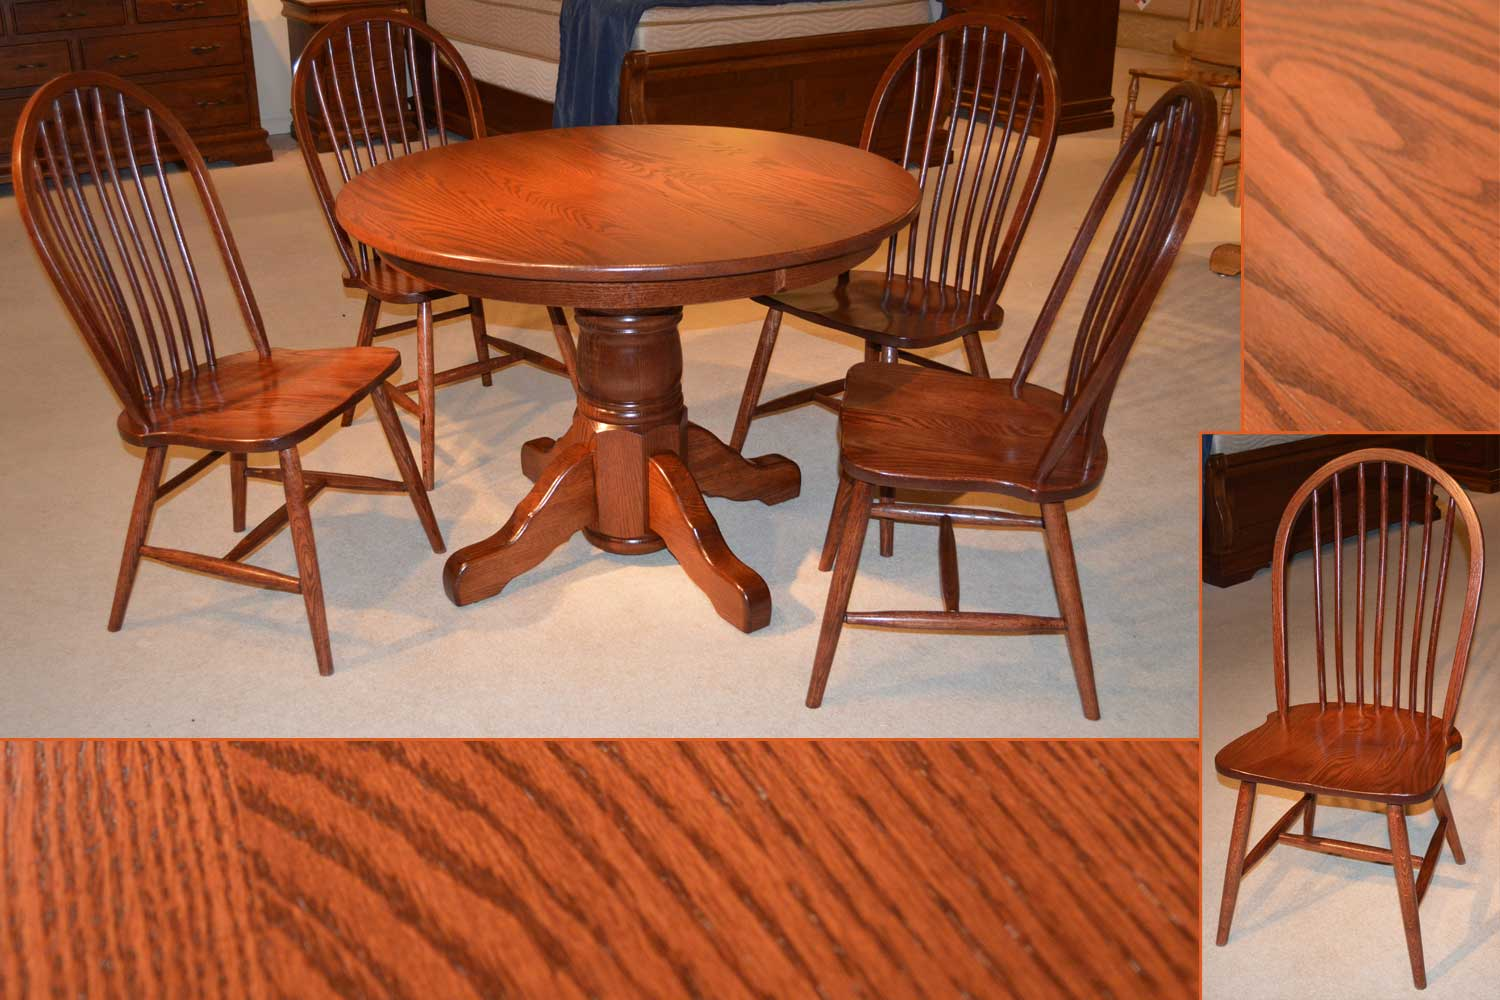 Maple Kitchen Table And Chairs Amish Dining Jasens Furniture Amish Dining Furniture